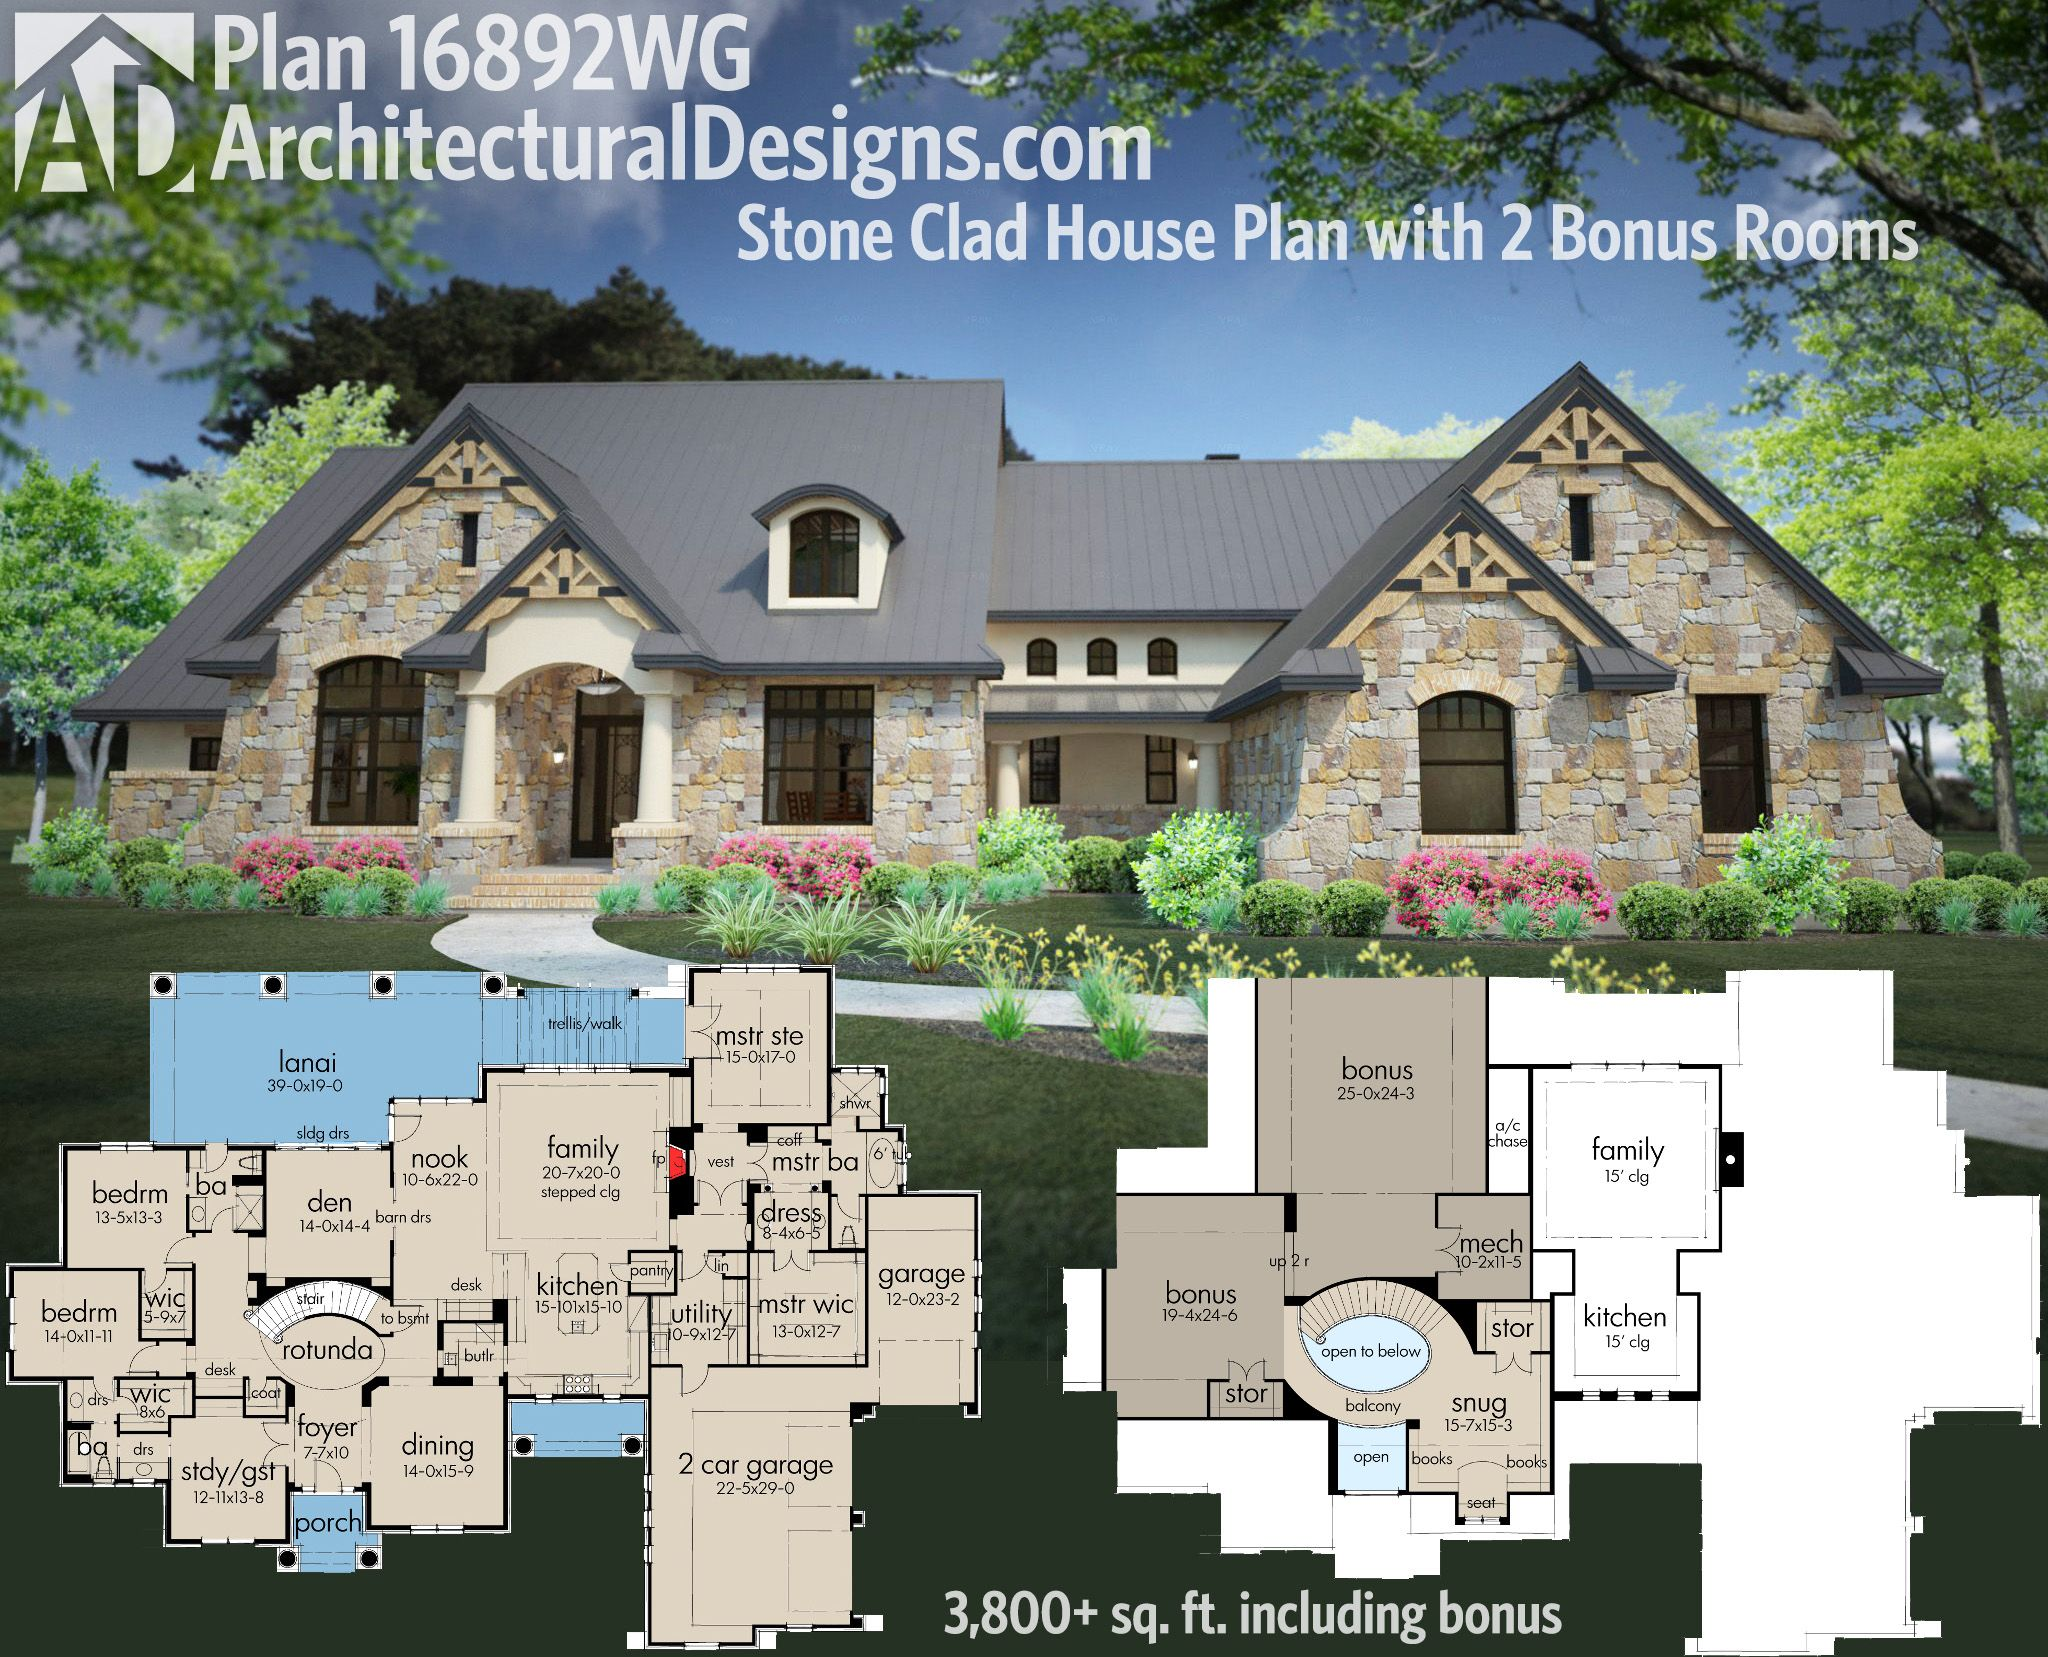 Plan 16892wg stone clad house plan with 2 bonus rooms 3 for House plans with bonus room